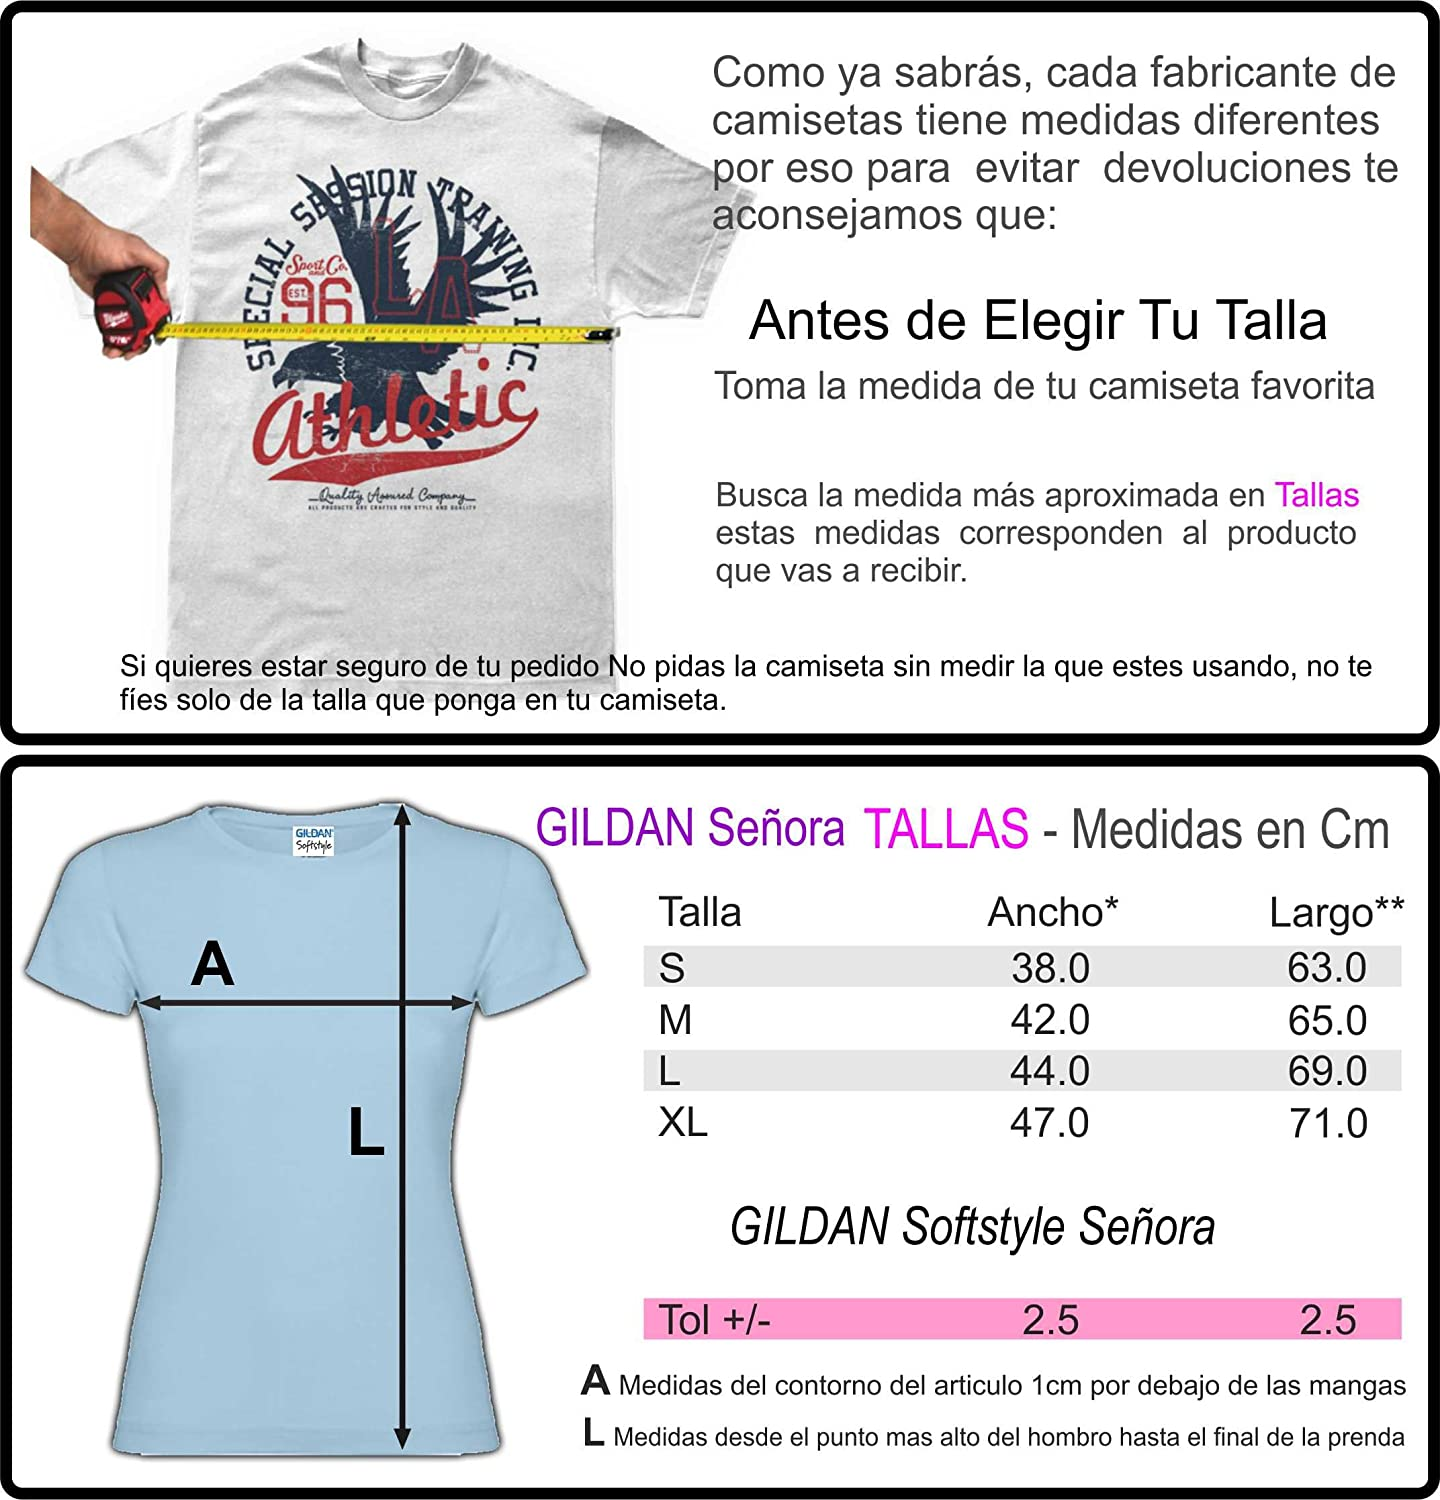 Game of Clones Game of Thrones 035-Camiseta Mujer